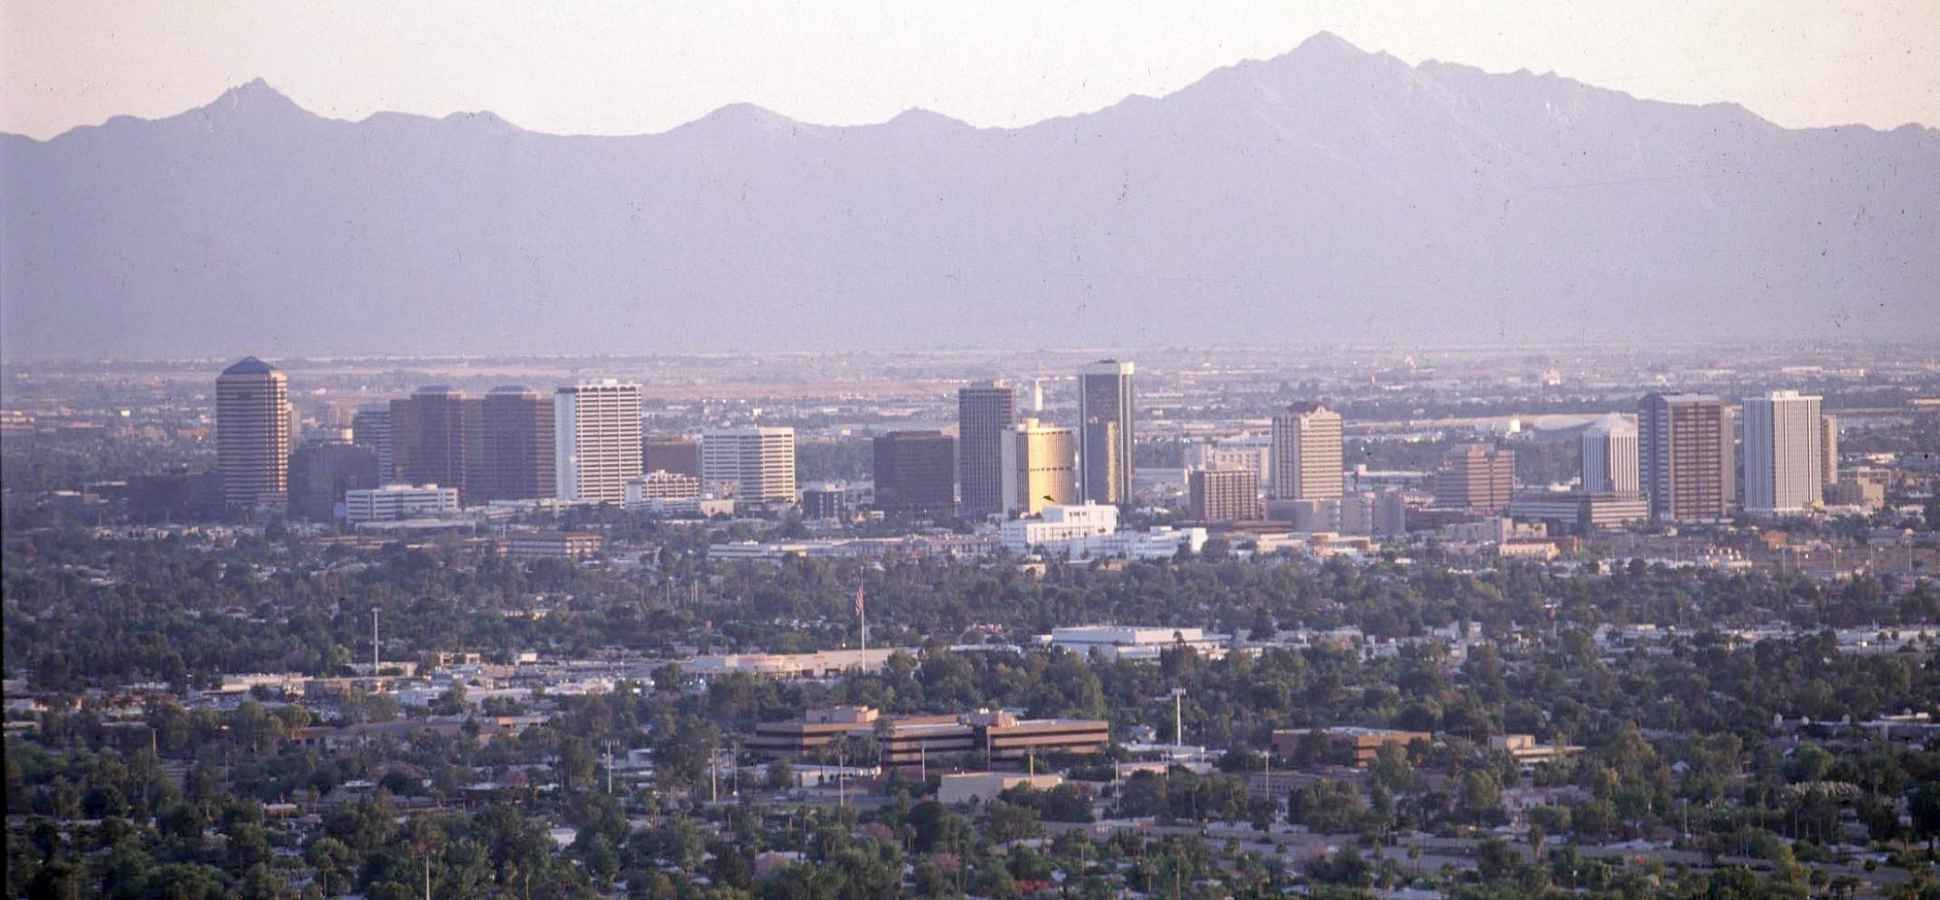 Why Businesses Are Moving to This Valley Instead (Hint: It's Not Silicon)